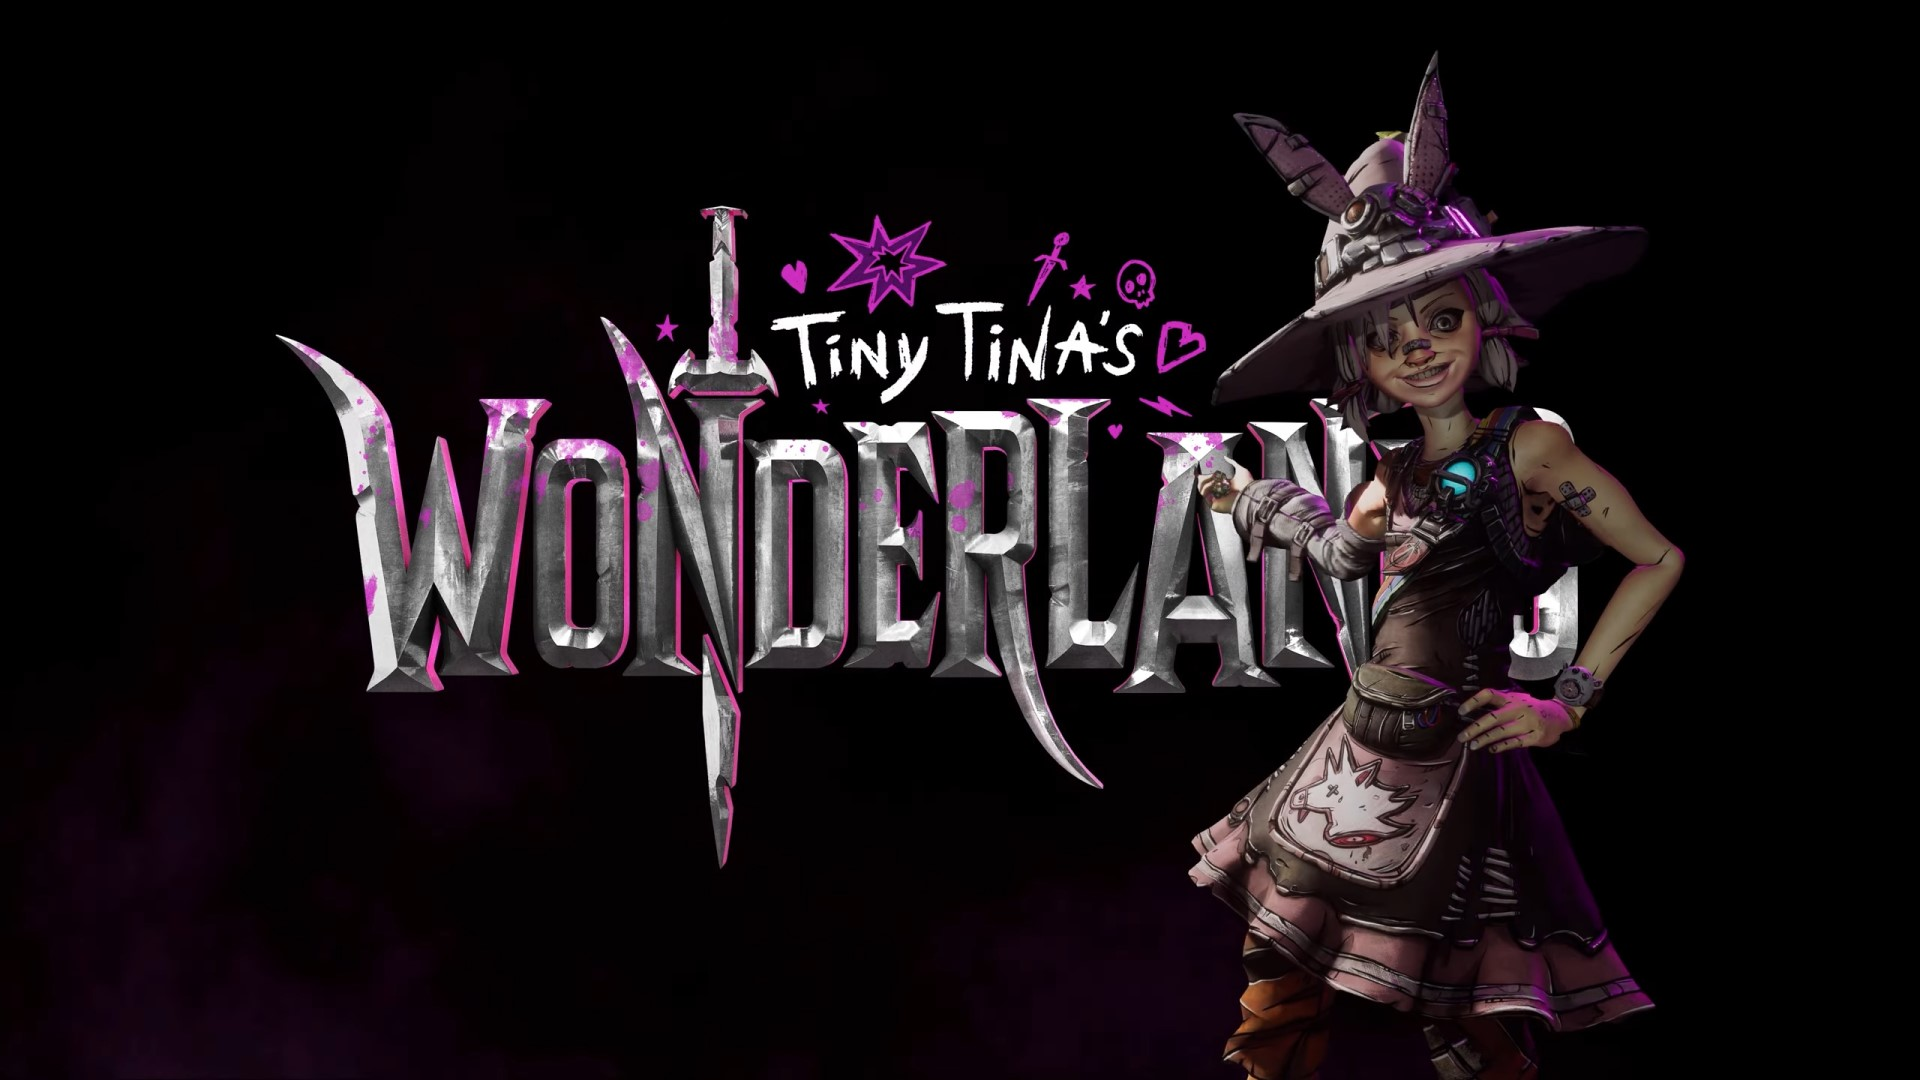 Tiny Tina's Wonderlands has been revealed at Summer Game Fest